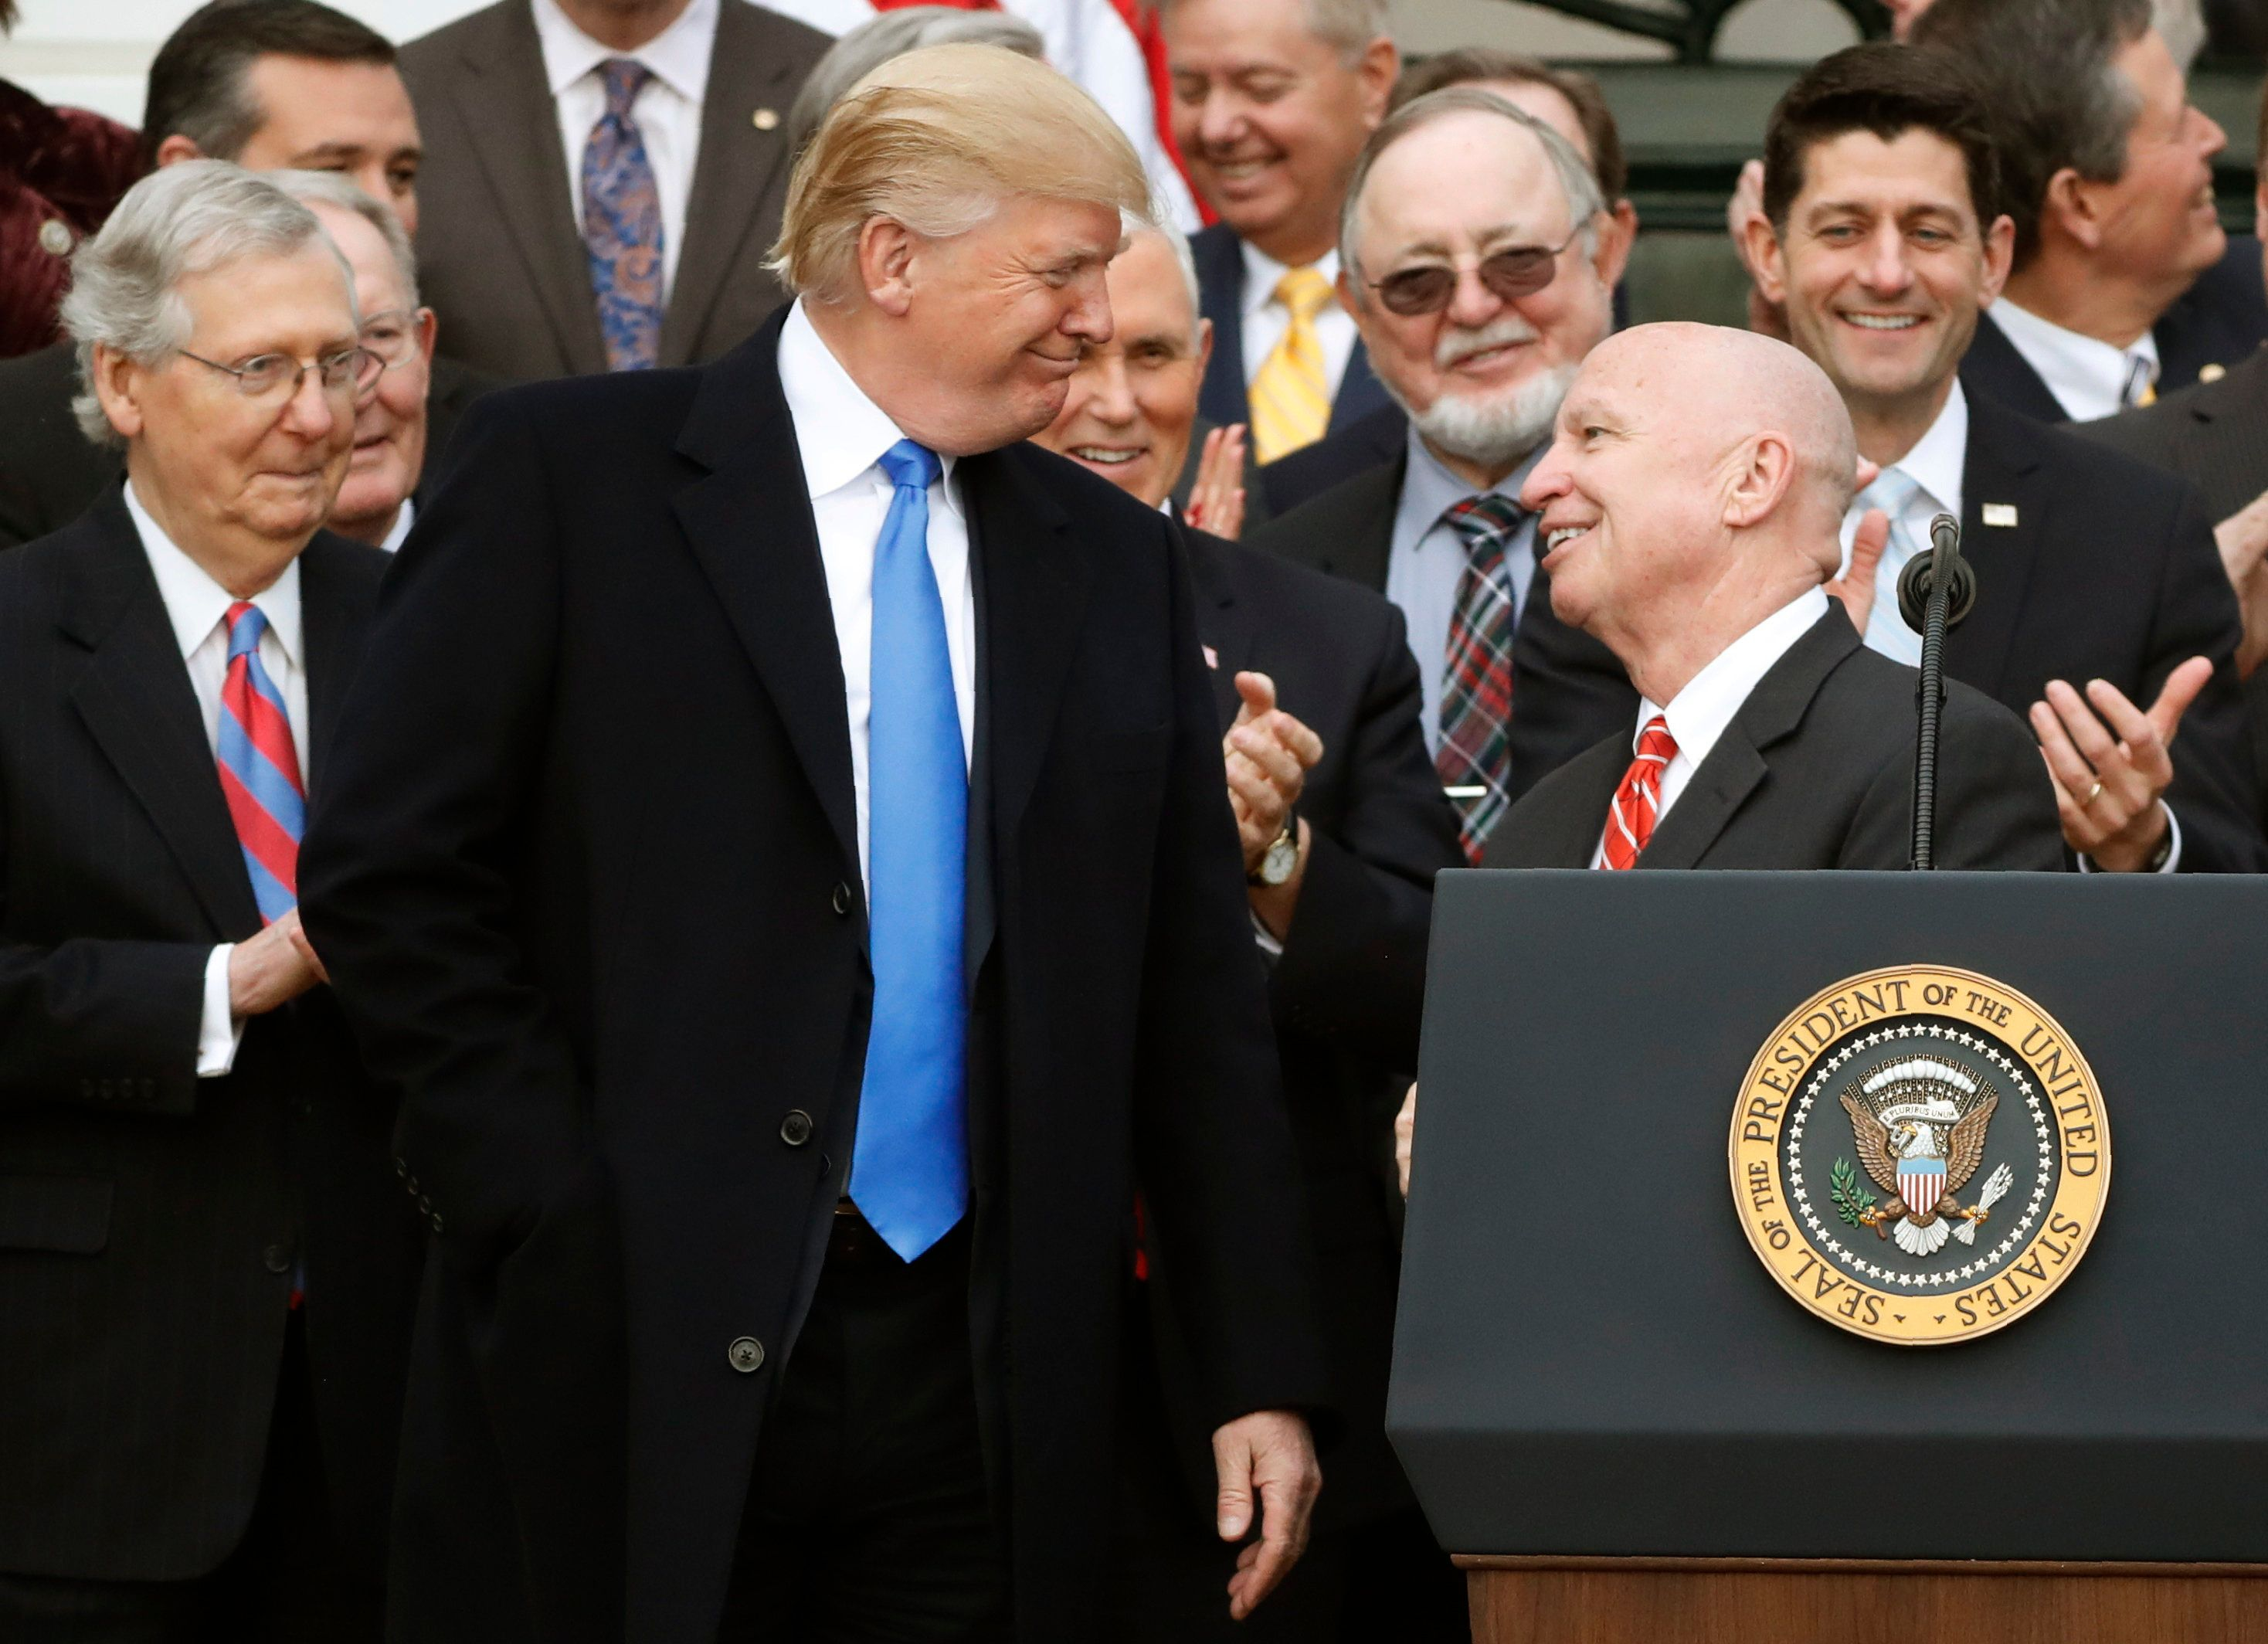 <p>President Donald Trump and House Ways and Means Committee Chairman Kevin Brady smile at each other as Senate Majority Leader Mitch McConnell (L), Vice President Mike Pence, U.S. Rep Don Young and Speaker of the House Paul Ryan look with other Congressional Republicans after the U.S. Congress passed sweeping tax overhaul legislation, on the South Lawn of the White House in Washington, U.S., December 20, 2017. REUTERS/Jonathan Ernst</p>